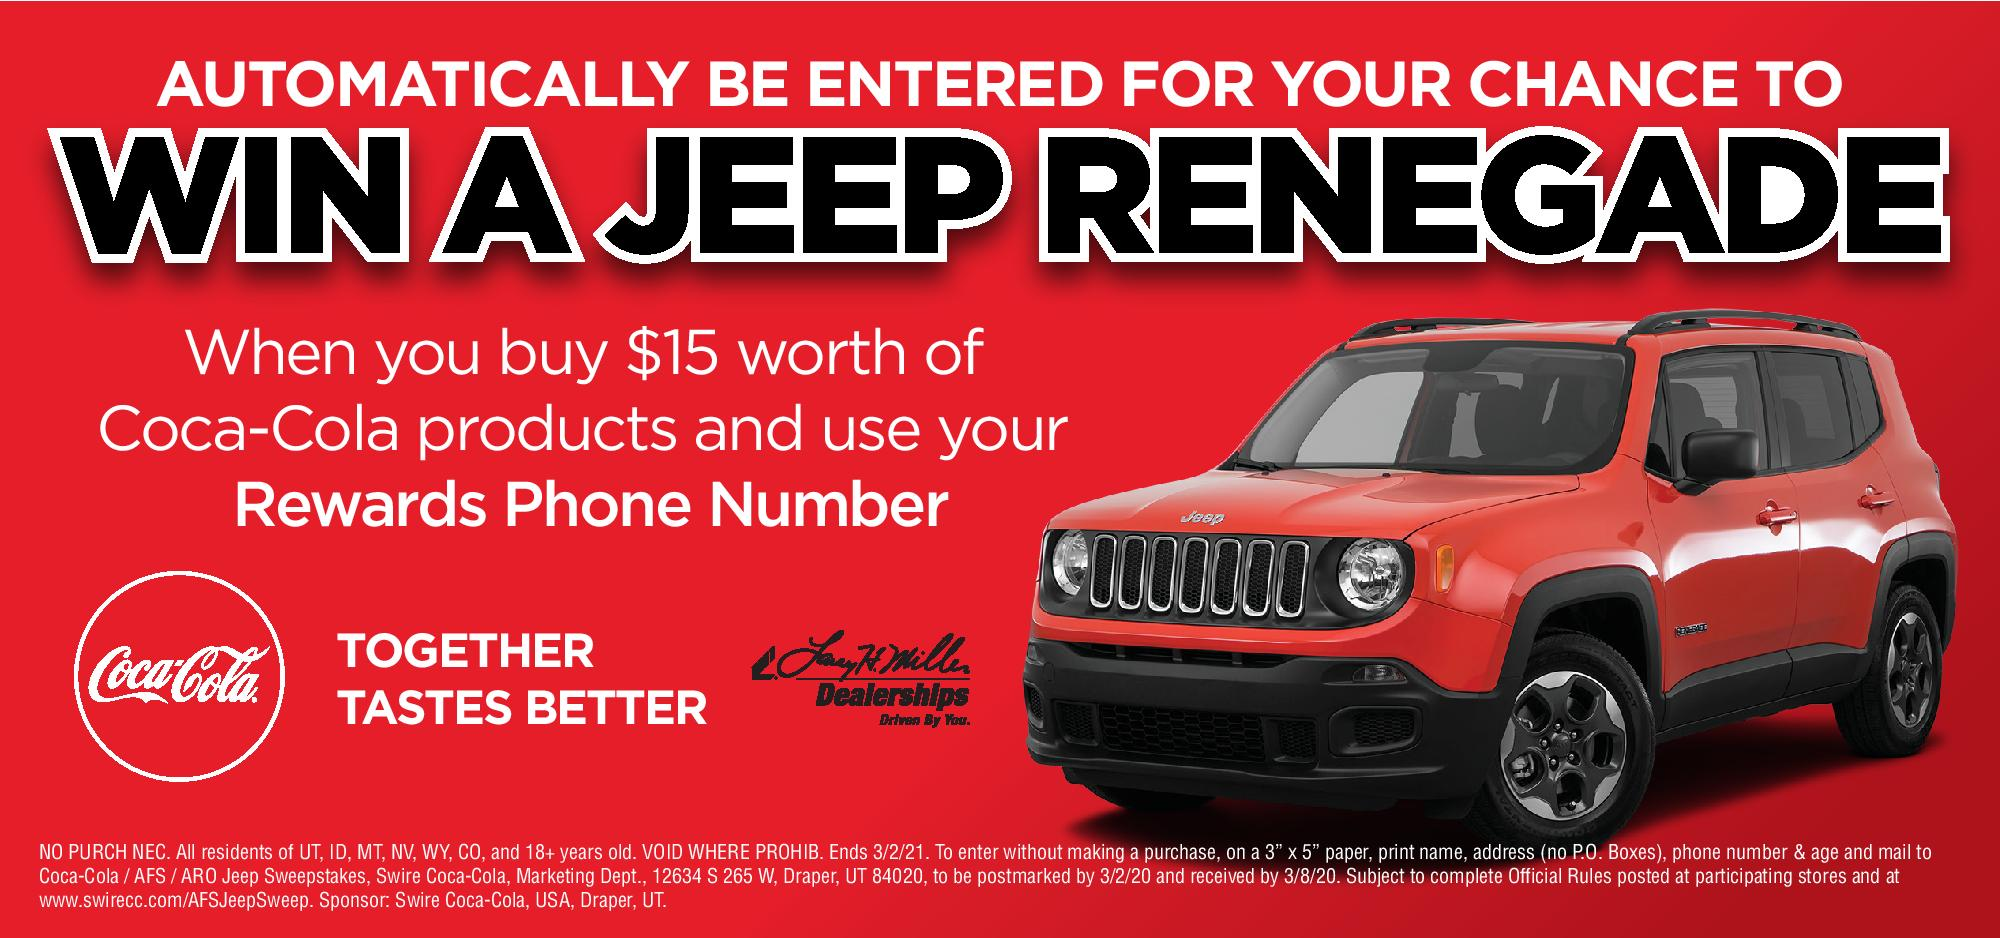 Enter to win a Jeep Renegade!